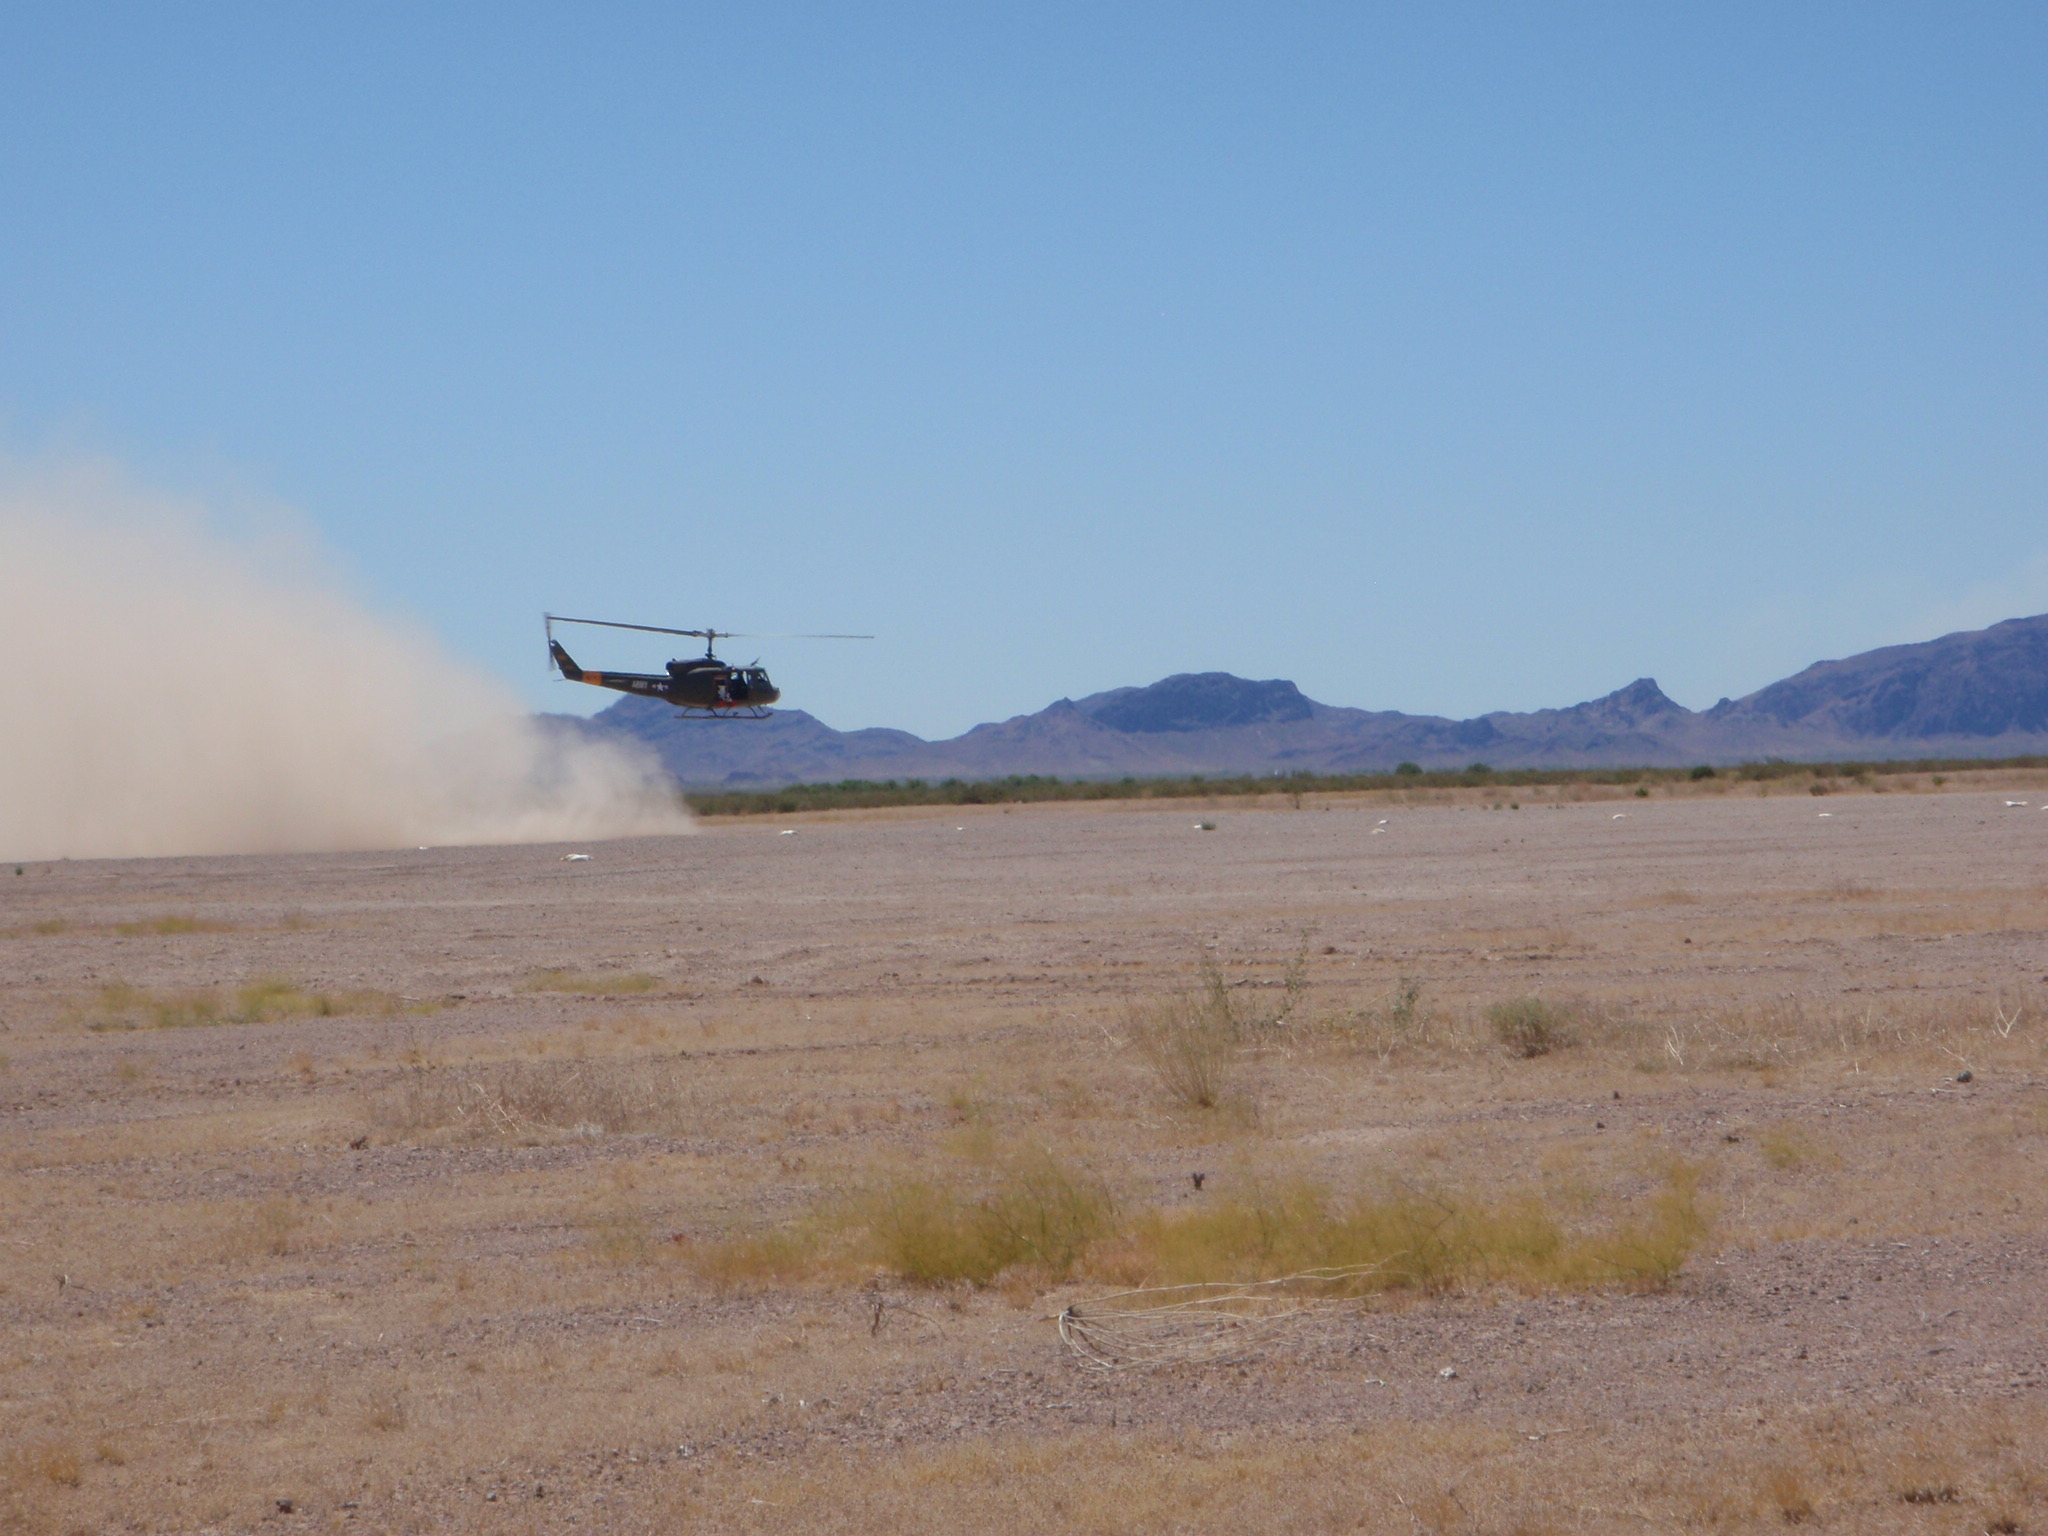 A helicopter lands on the dusty plains at Yuma Proving Grounds, AZ in an effort to better understand Helicopter Brownout